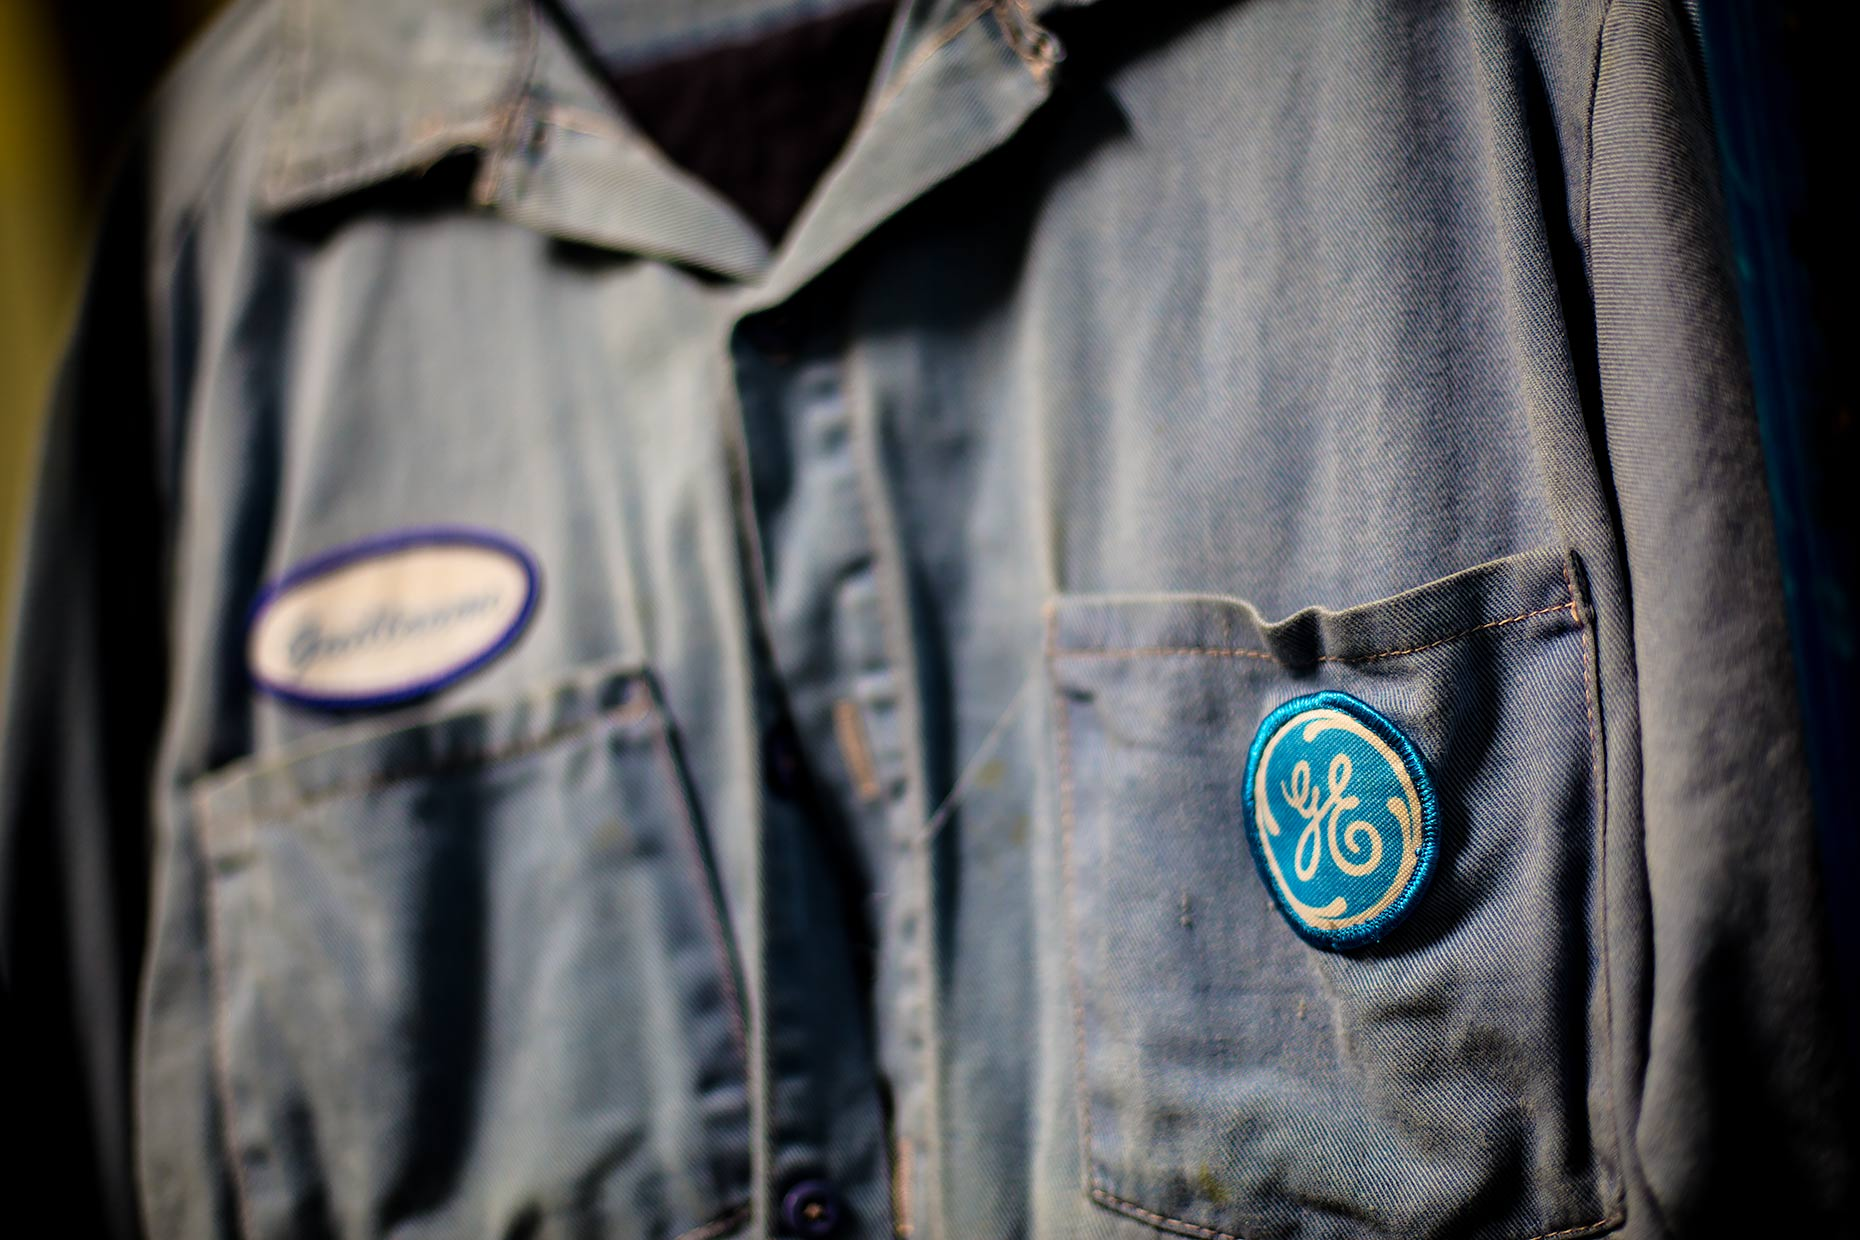 A GE uniform hangs on a hanger |  Scott Gable industrial photographer